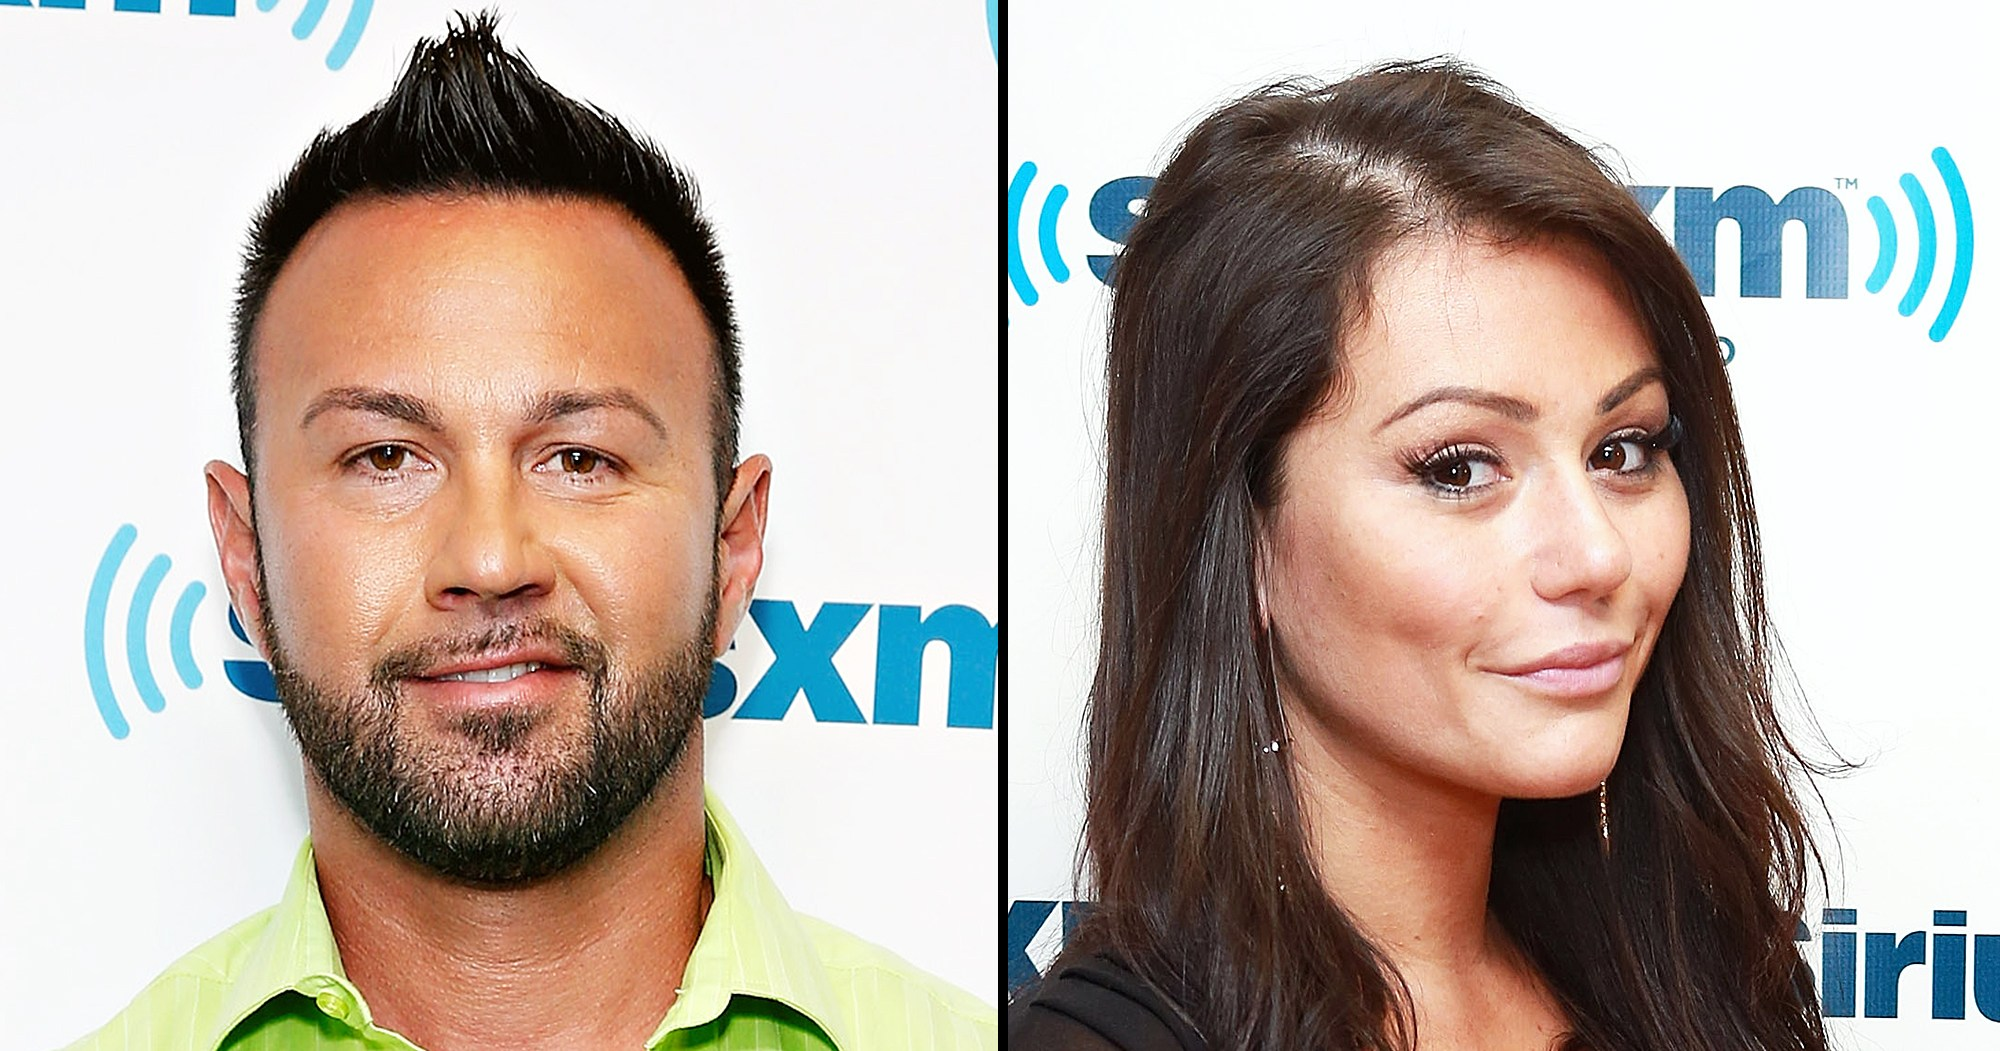 Roger Wants to Be on 'Jersey Shore' to Tell His Side of the JWoww Drama